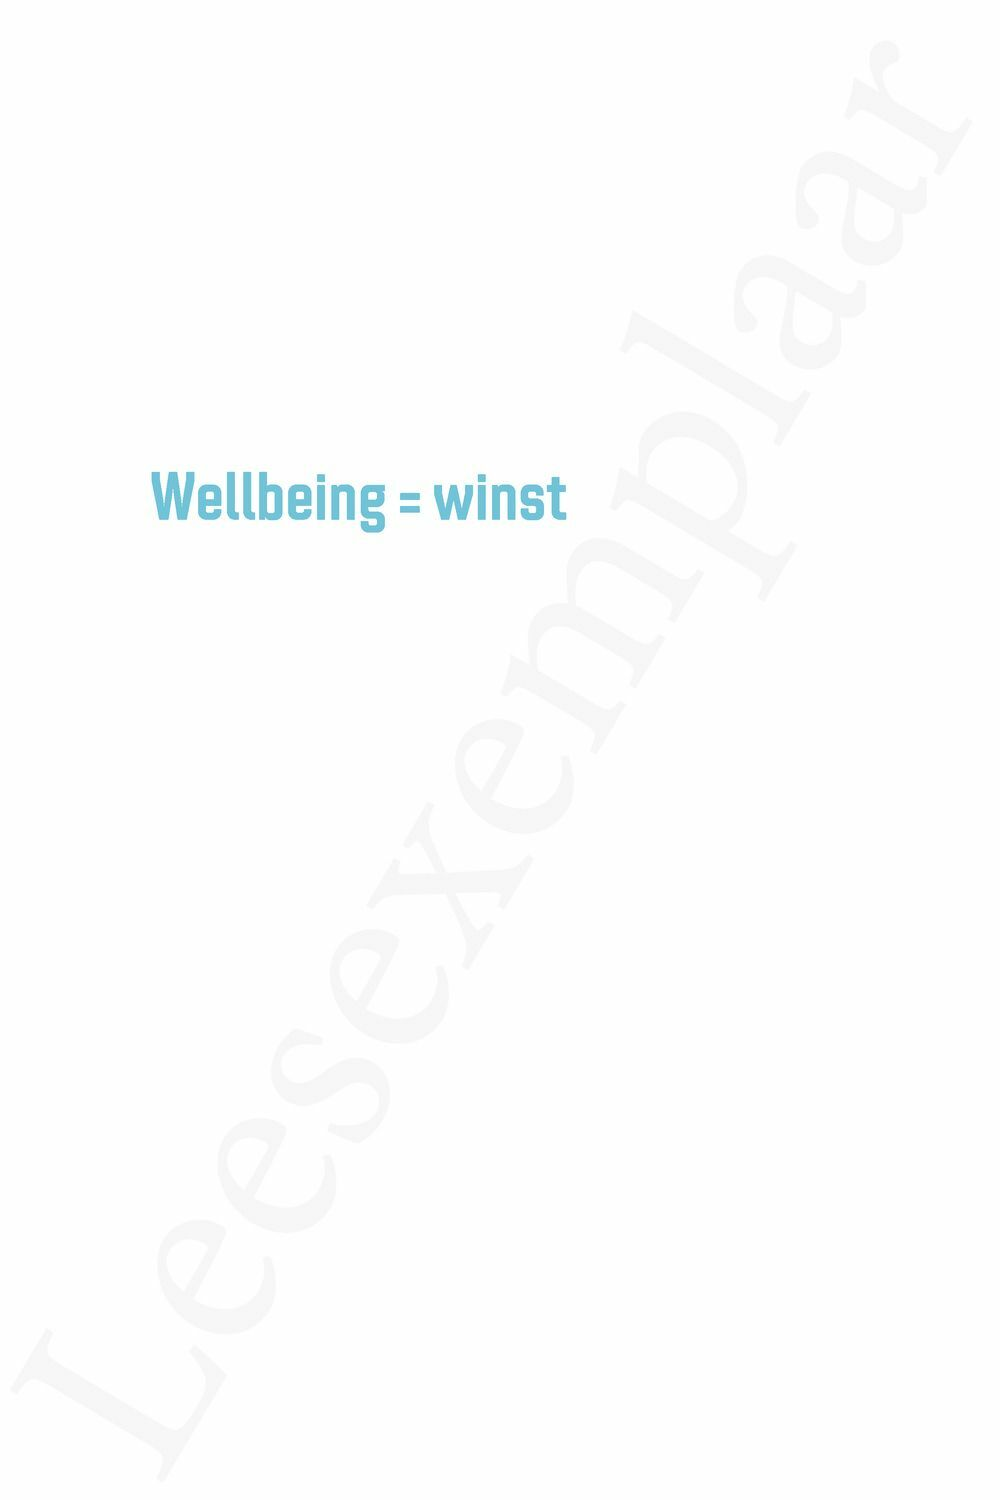 Preview: Wellbeing = winst